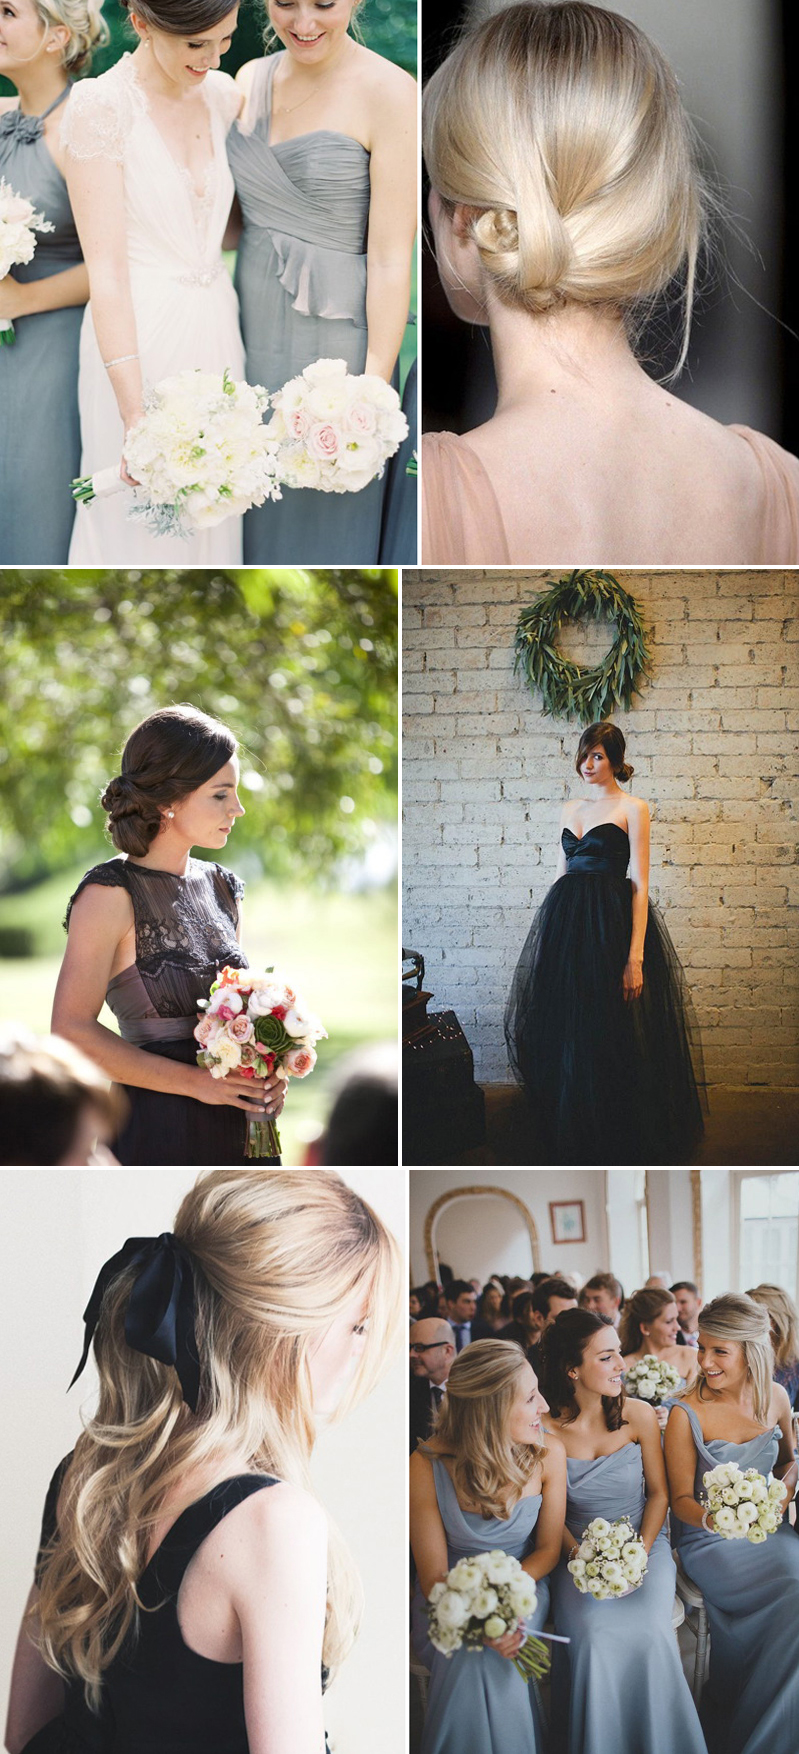 Coco Wedding Venues - Classic Elegance - Wedding Style Category - Bridesmaids.